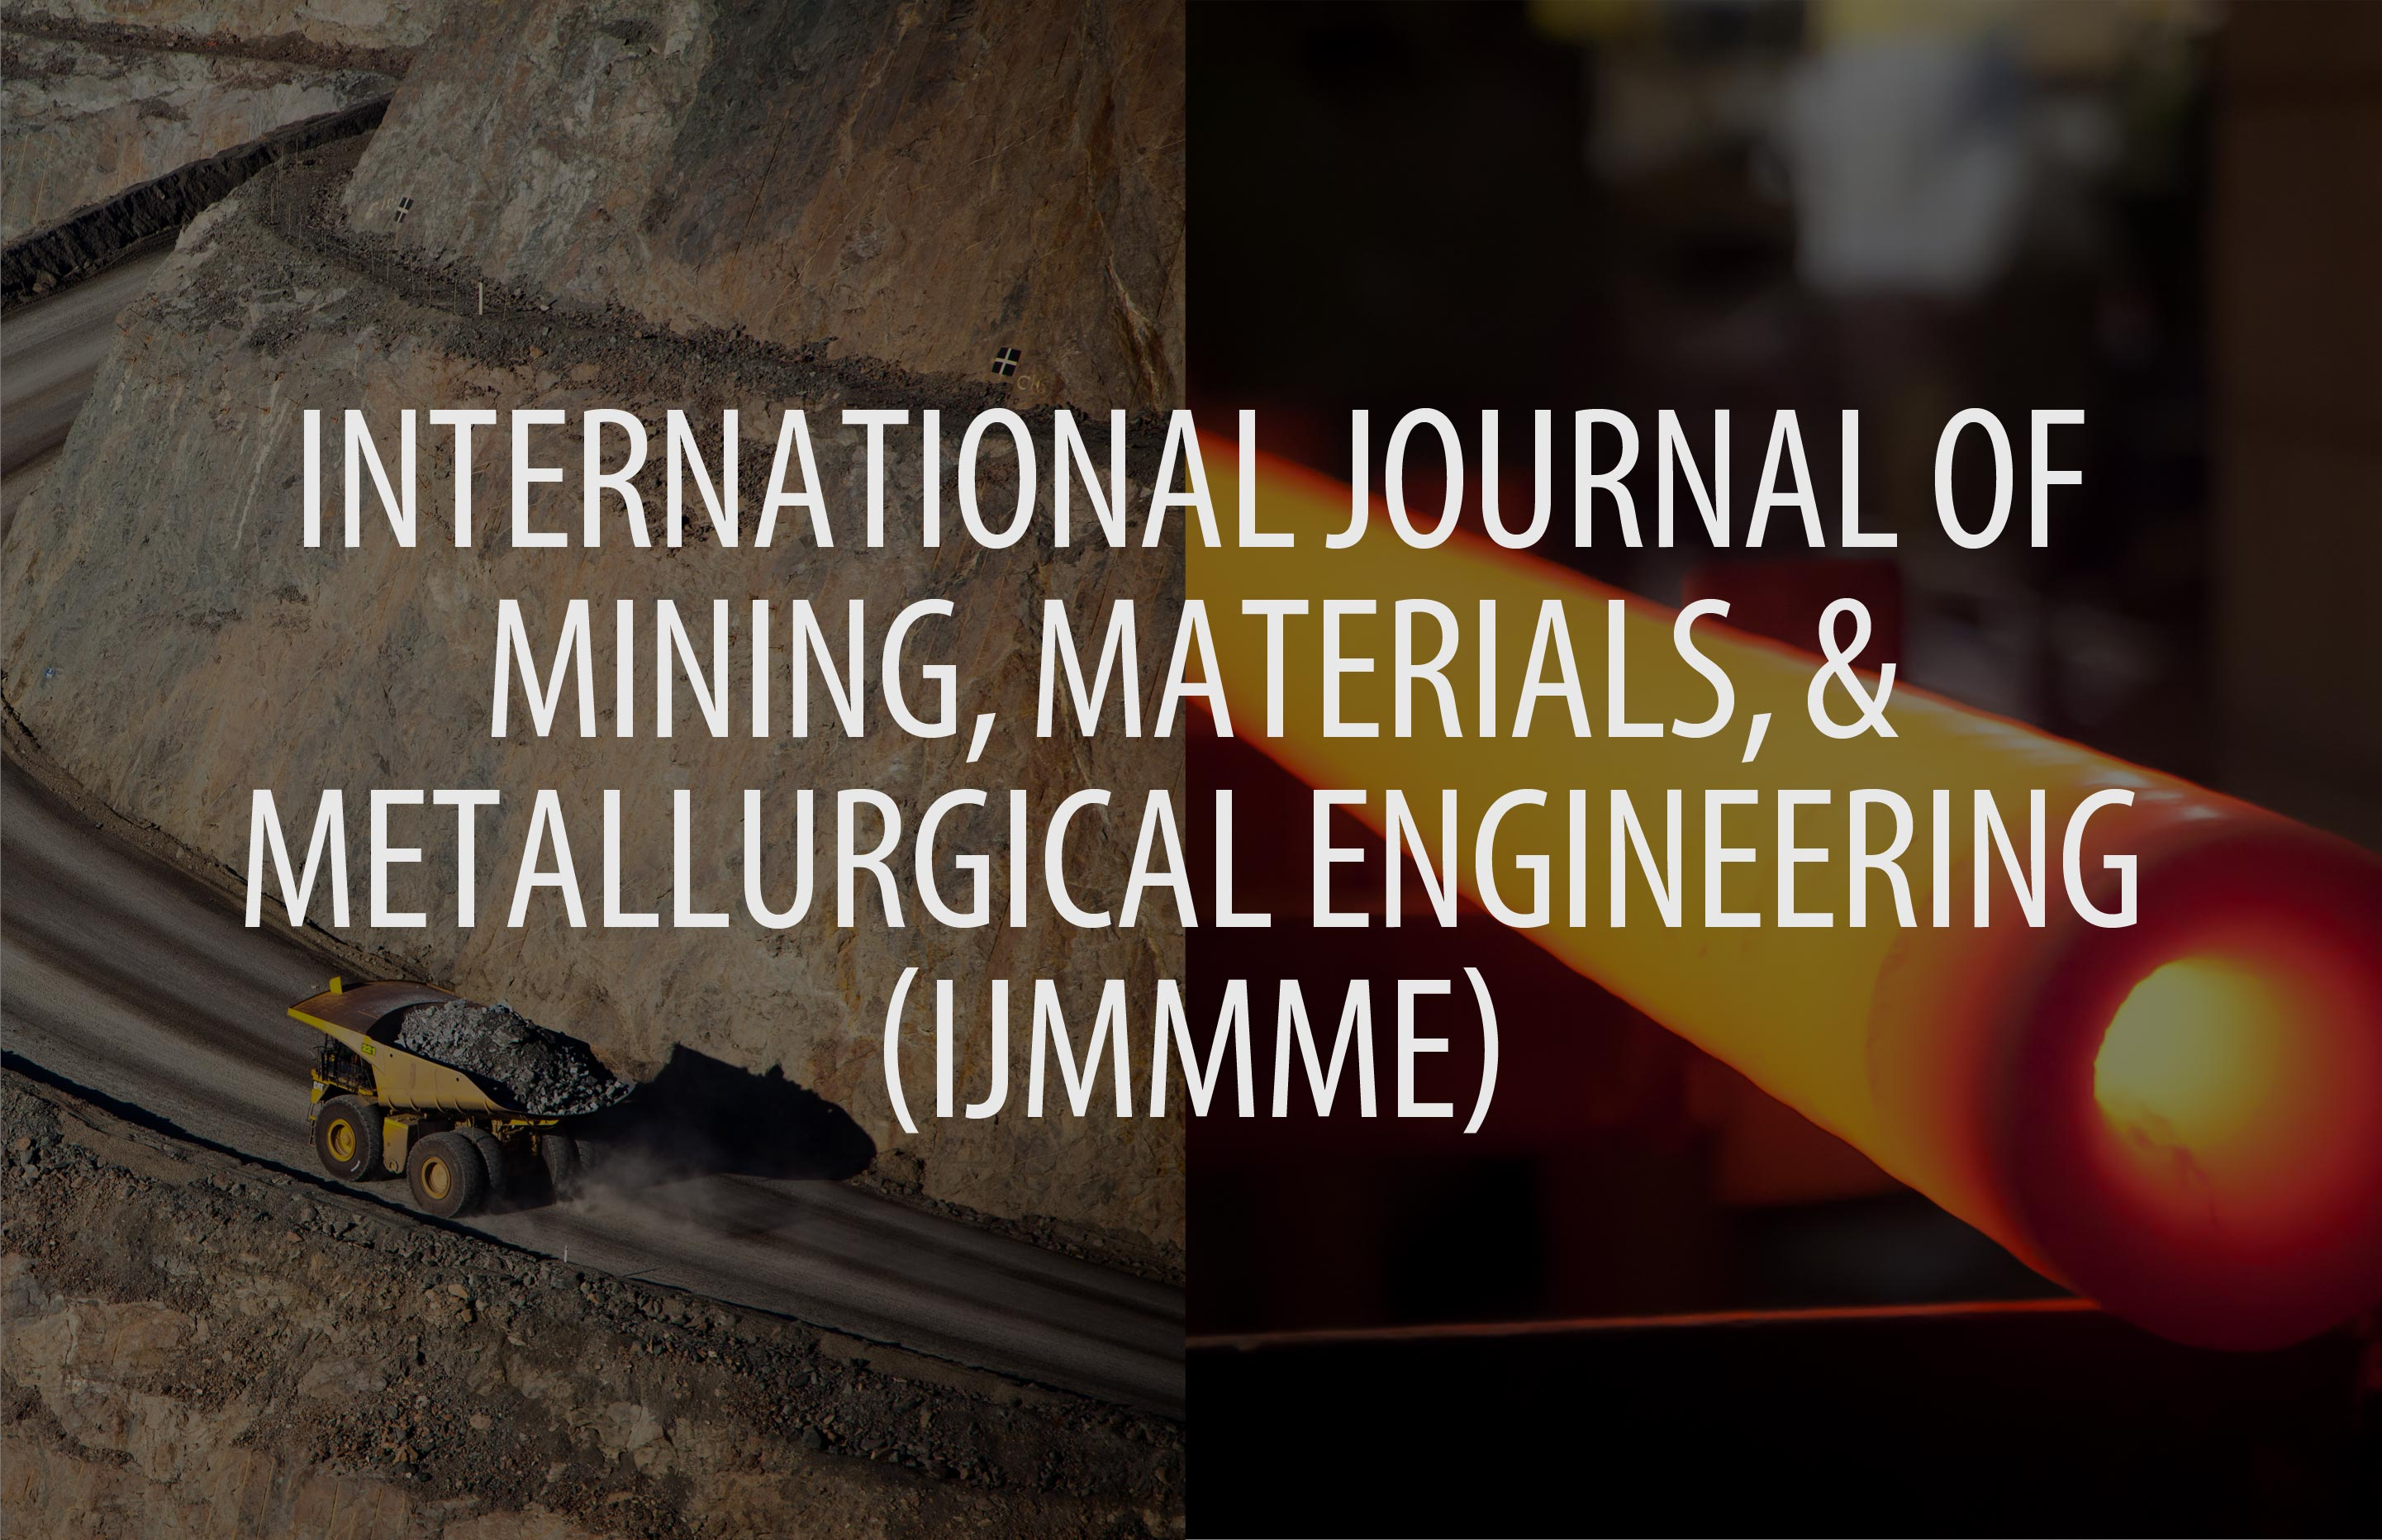 International Journal of Mining, Materials and Metallurgical Engineering (IJMMME)